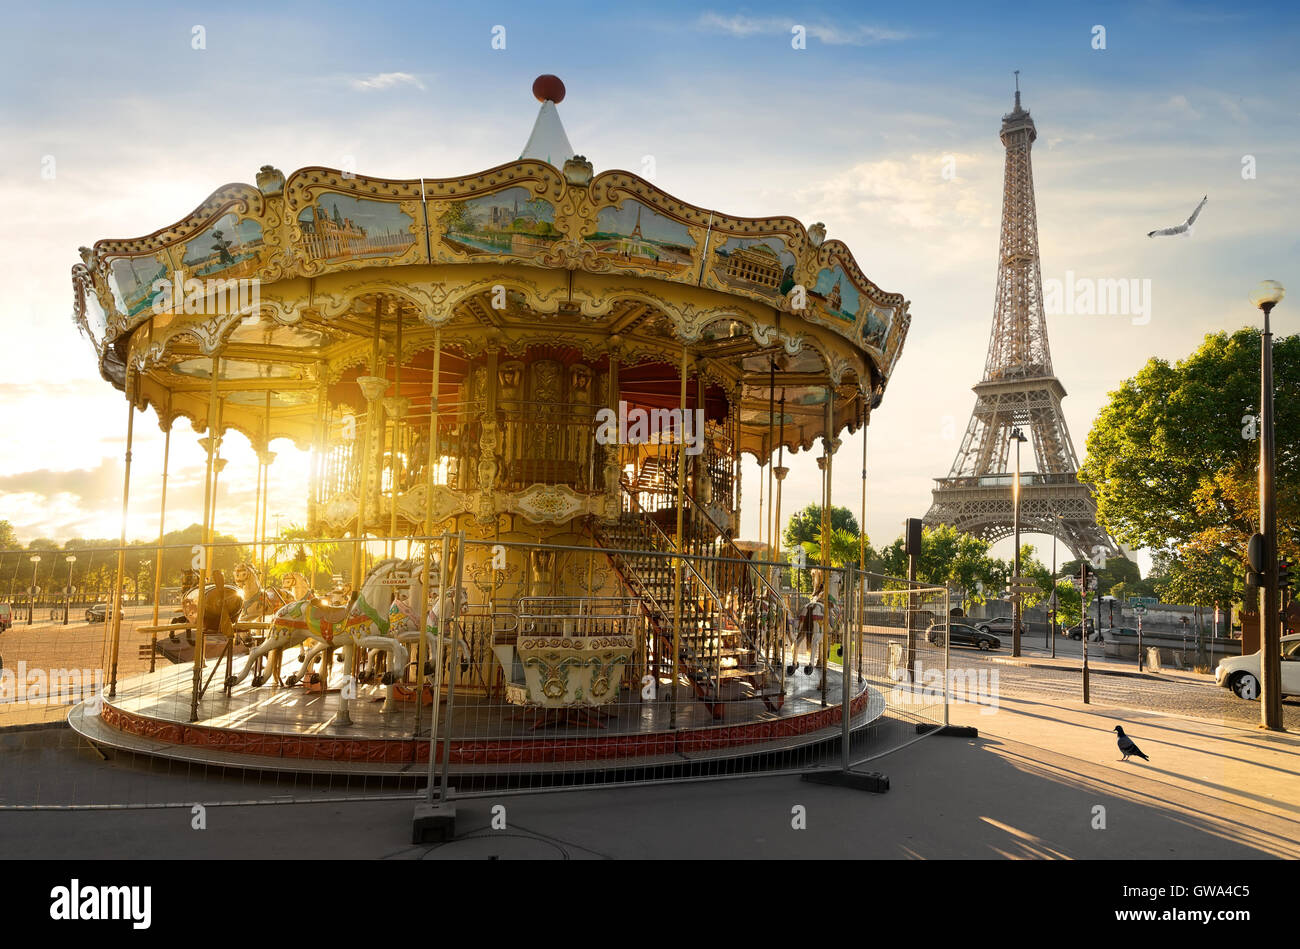 Carousel in park near the Eiffel tower in Paris - Stock Image